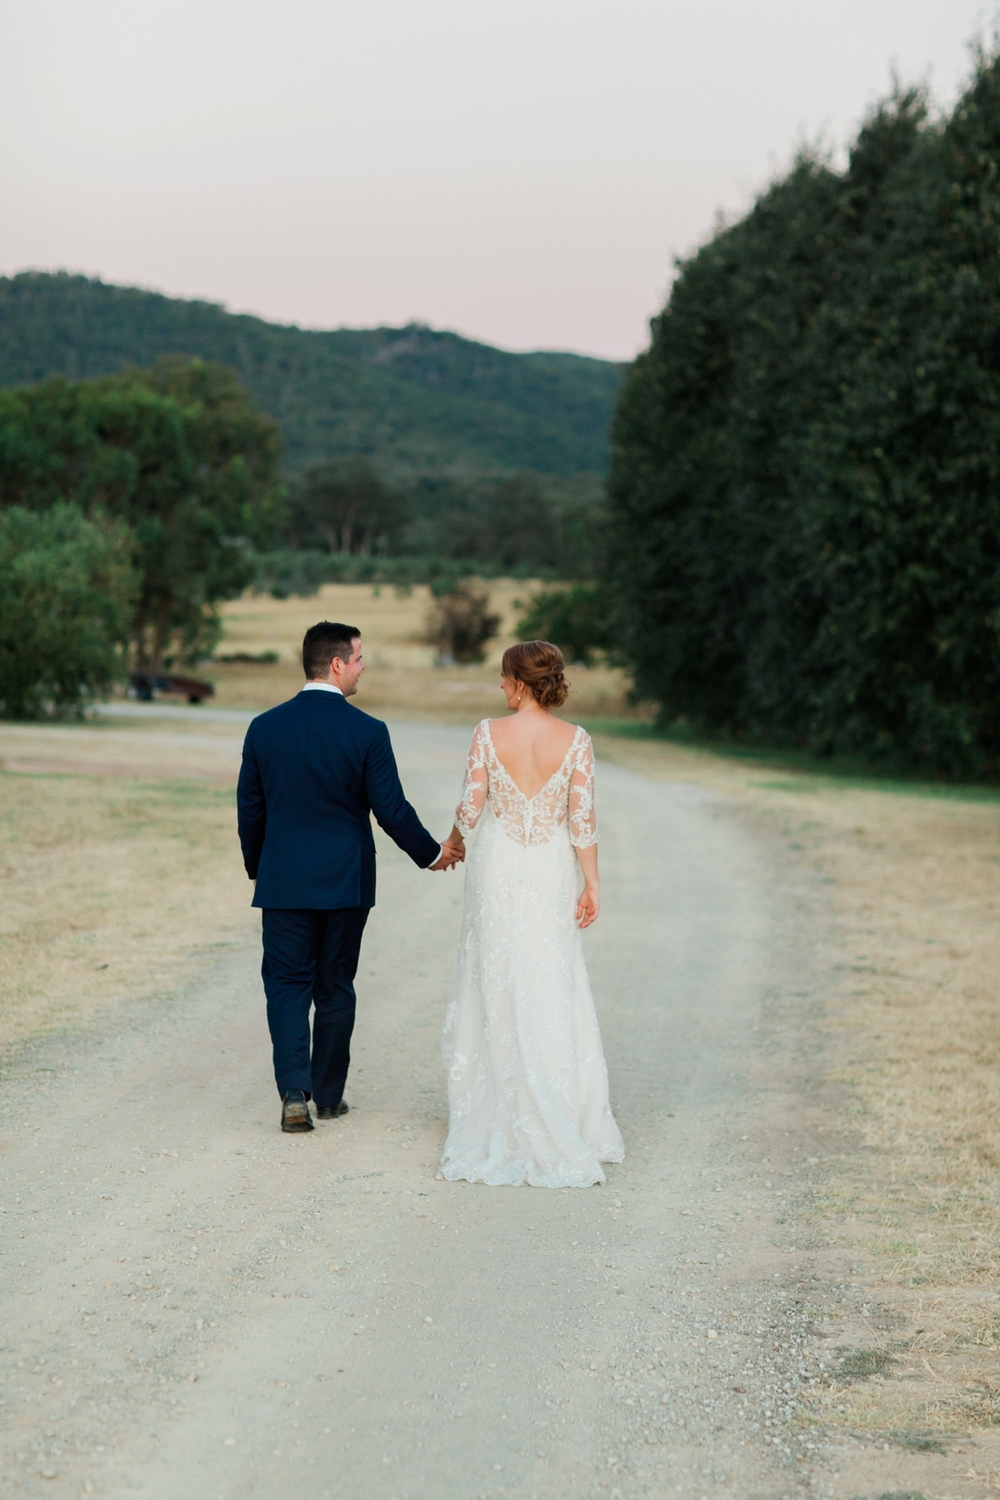 The Vine Grove Mudgee Wedding, Photography by Mr Edwards_1877.jpg